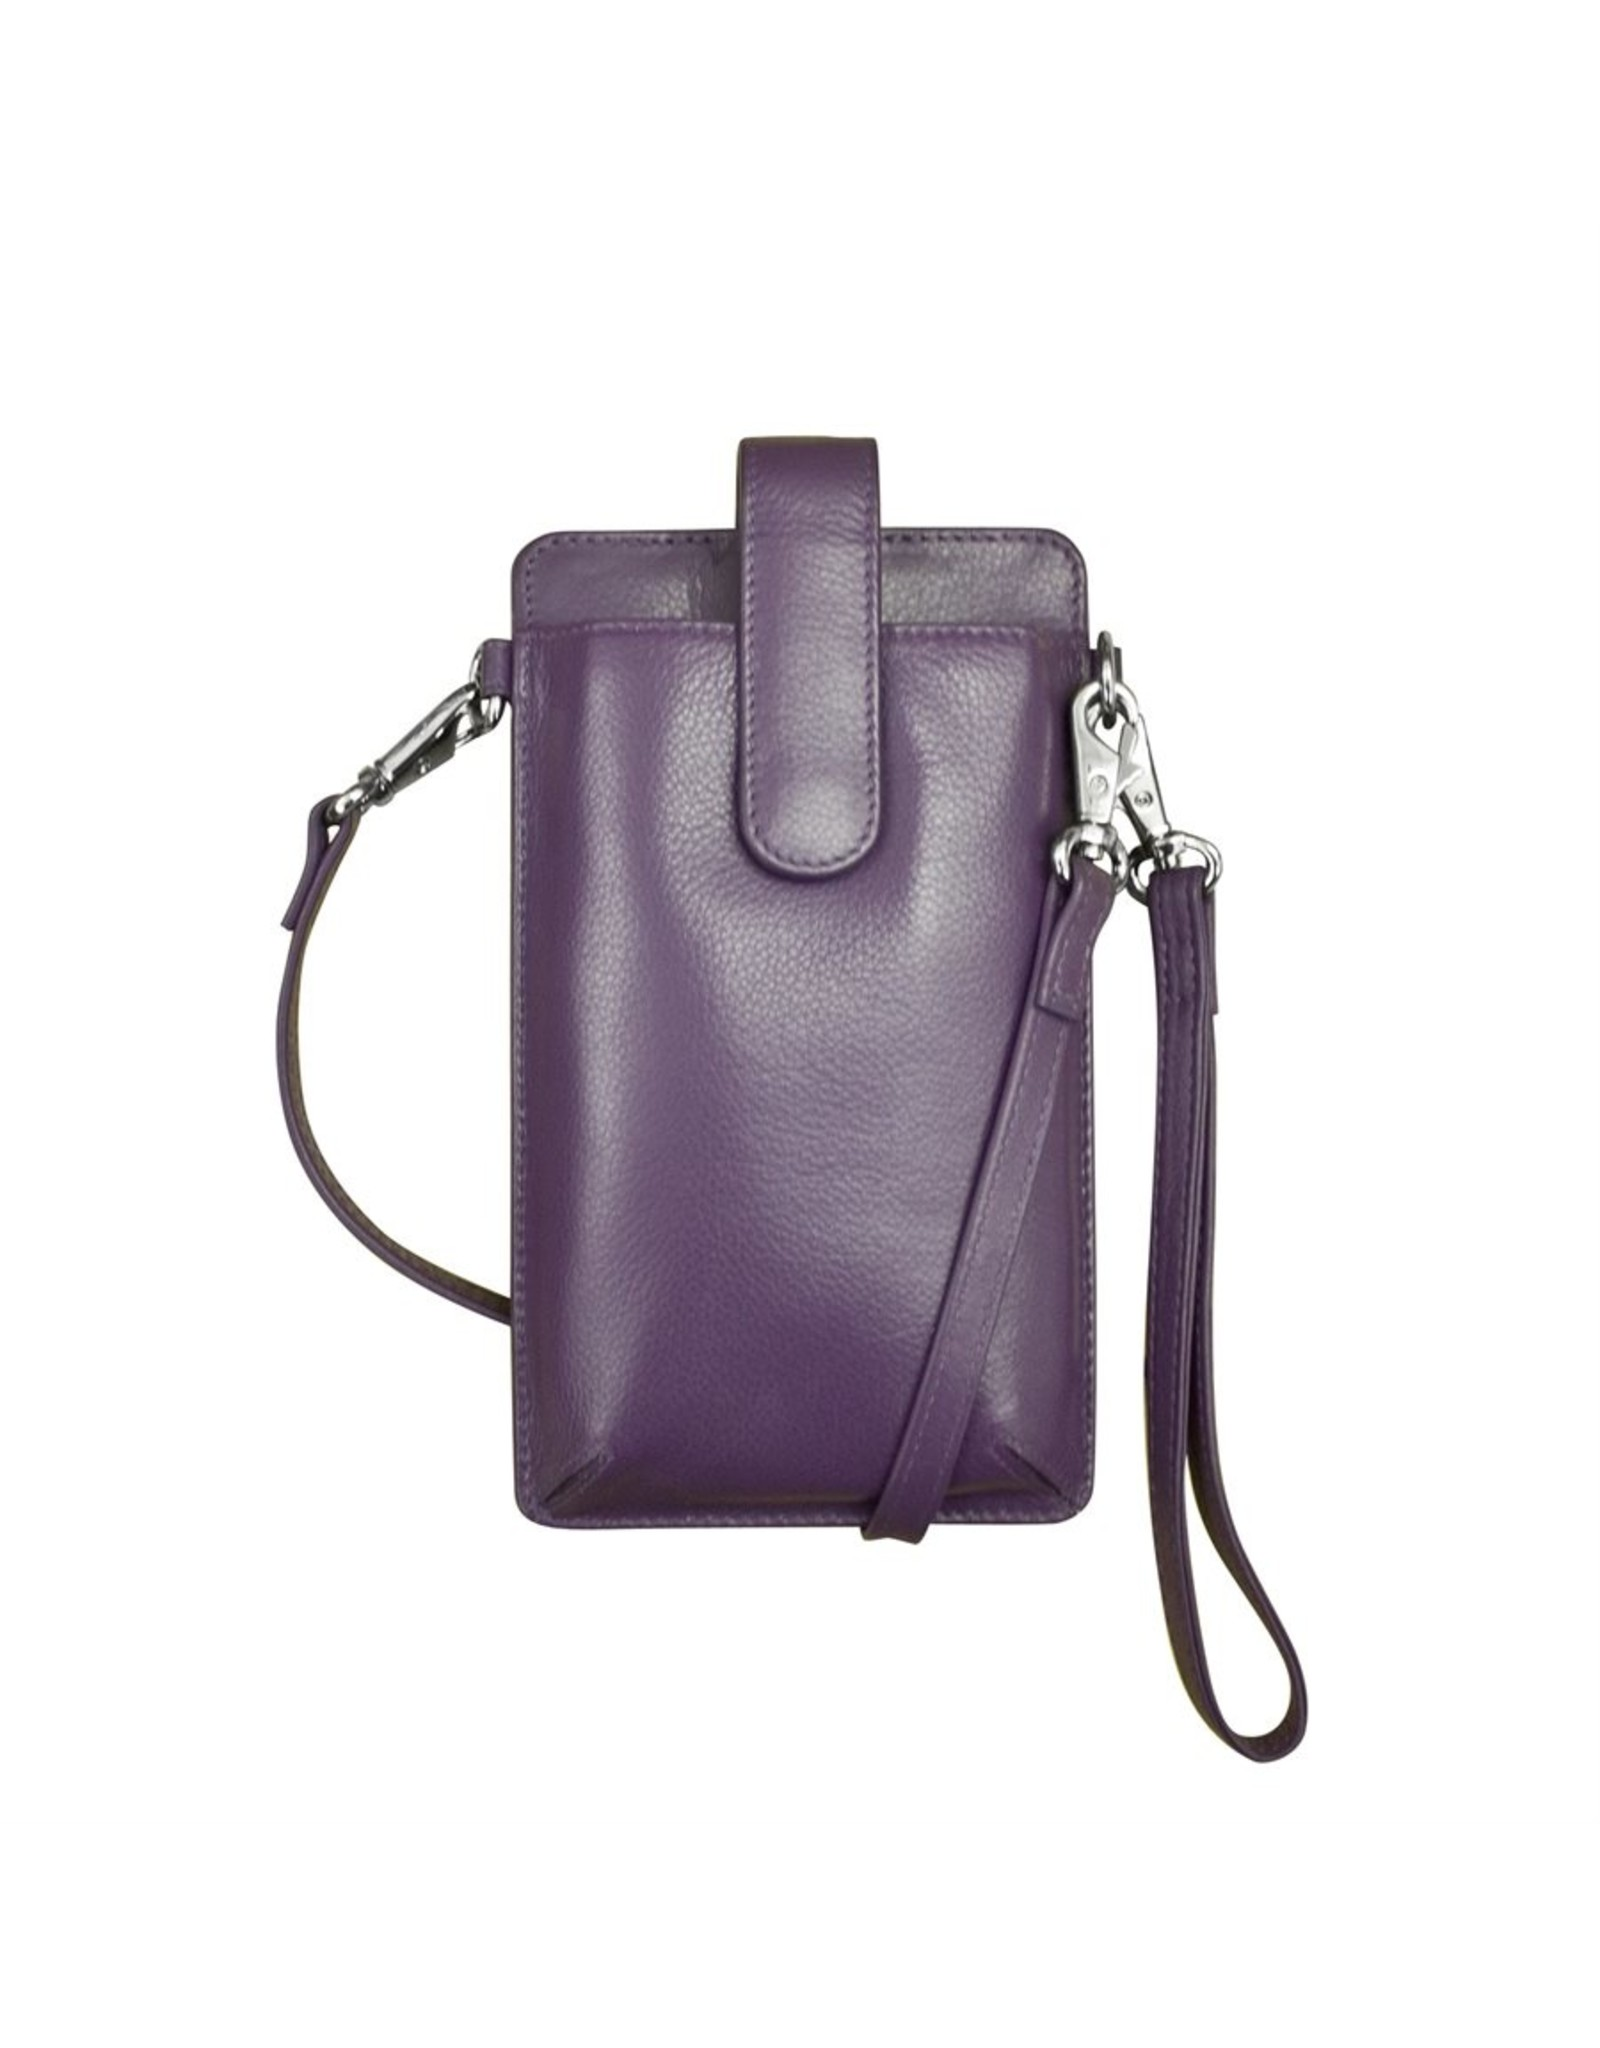 Leather Handbags and Accessories 6368 Smartphone Case Purple